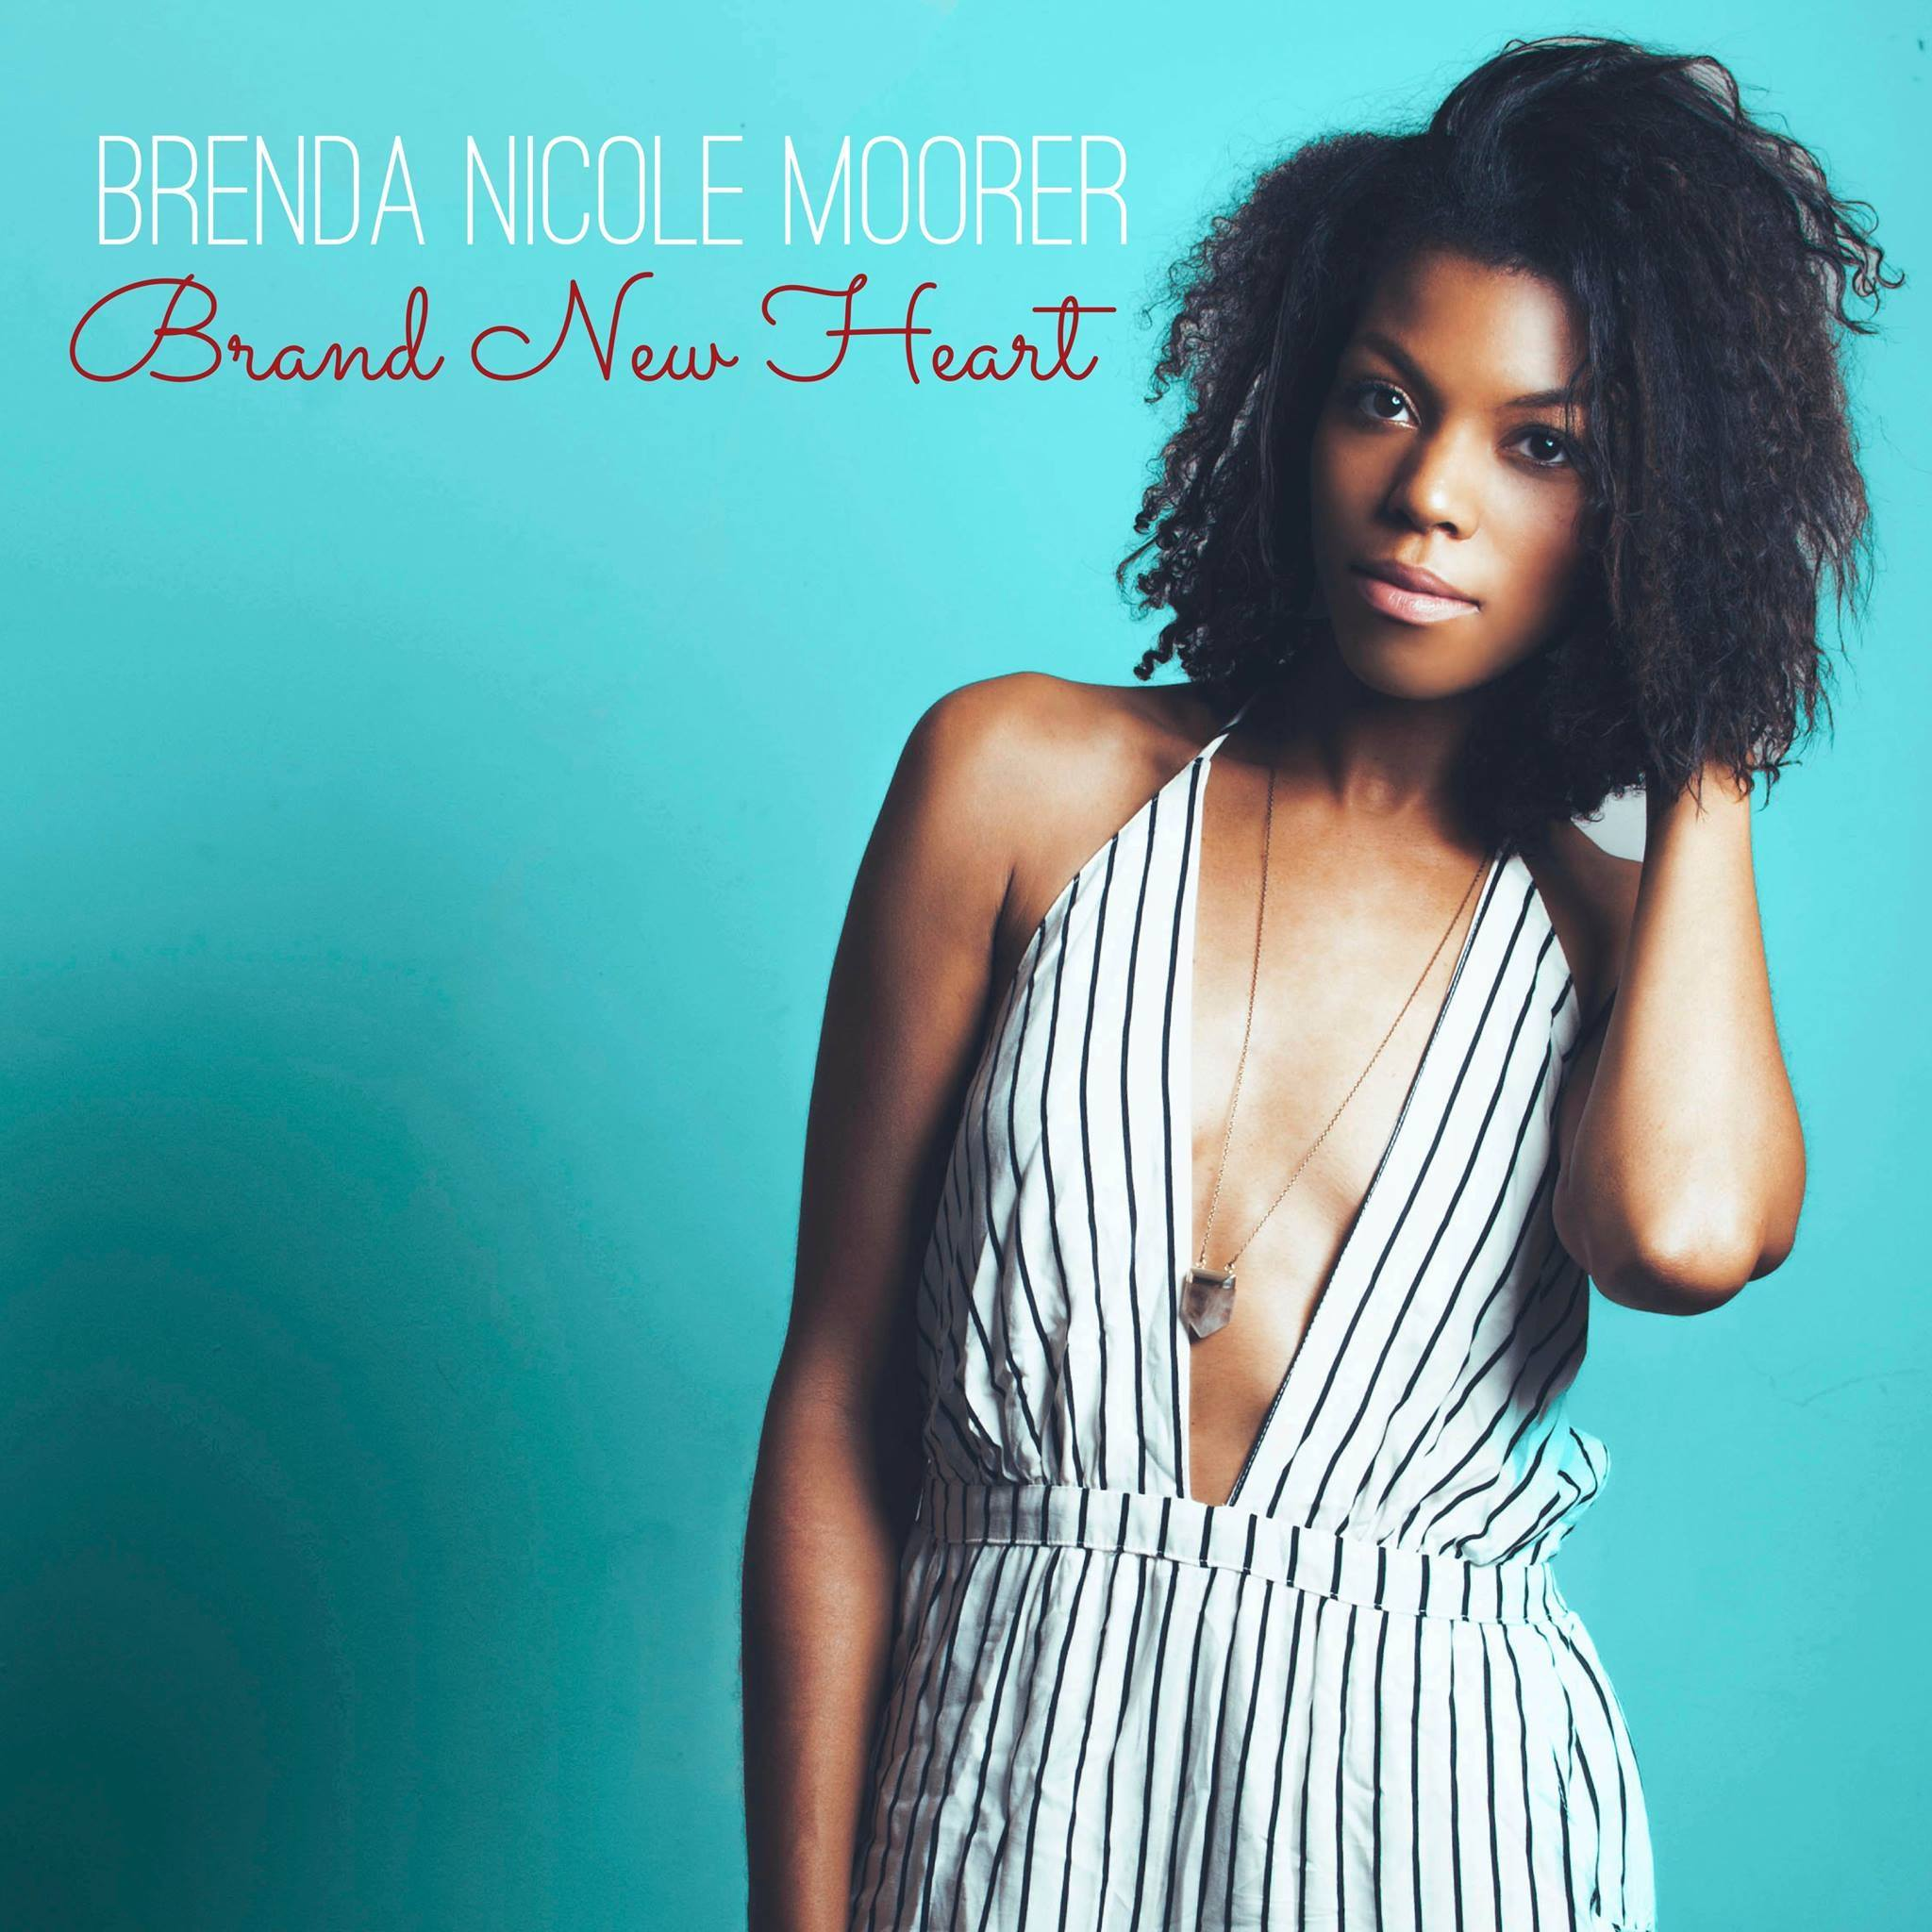 Brenda Nicole Moorer - Brenda Nicole Moorer is a singer and songwriter hailing from Atlanta, currently living between Atlanta and Harlem. Moorer released her debut indie album in 2011 entitled